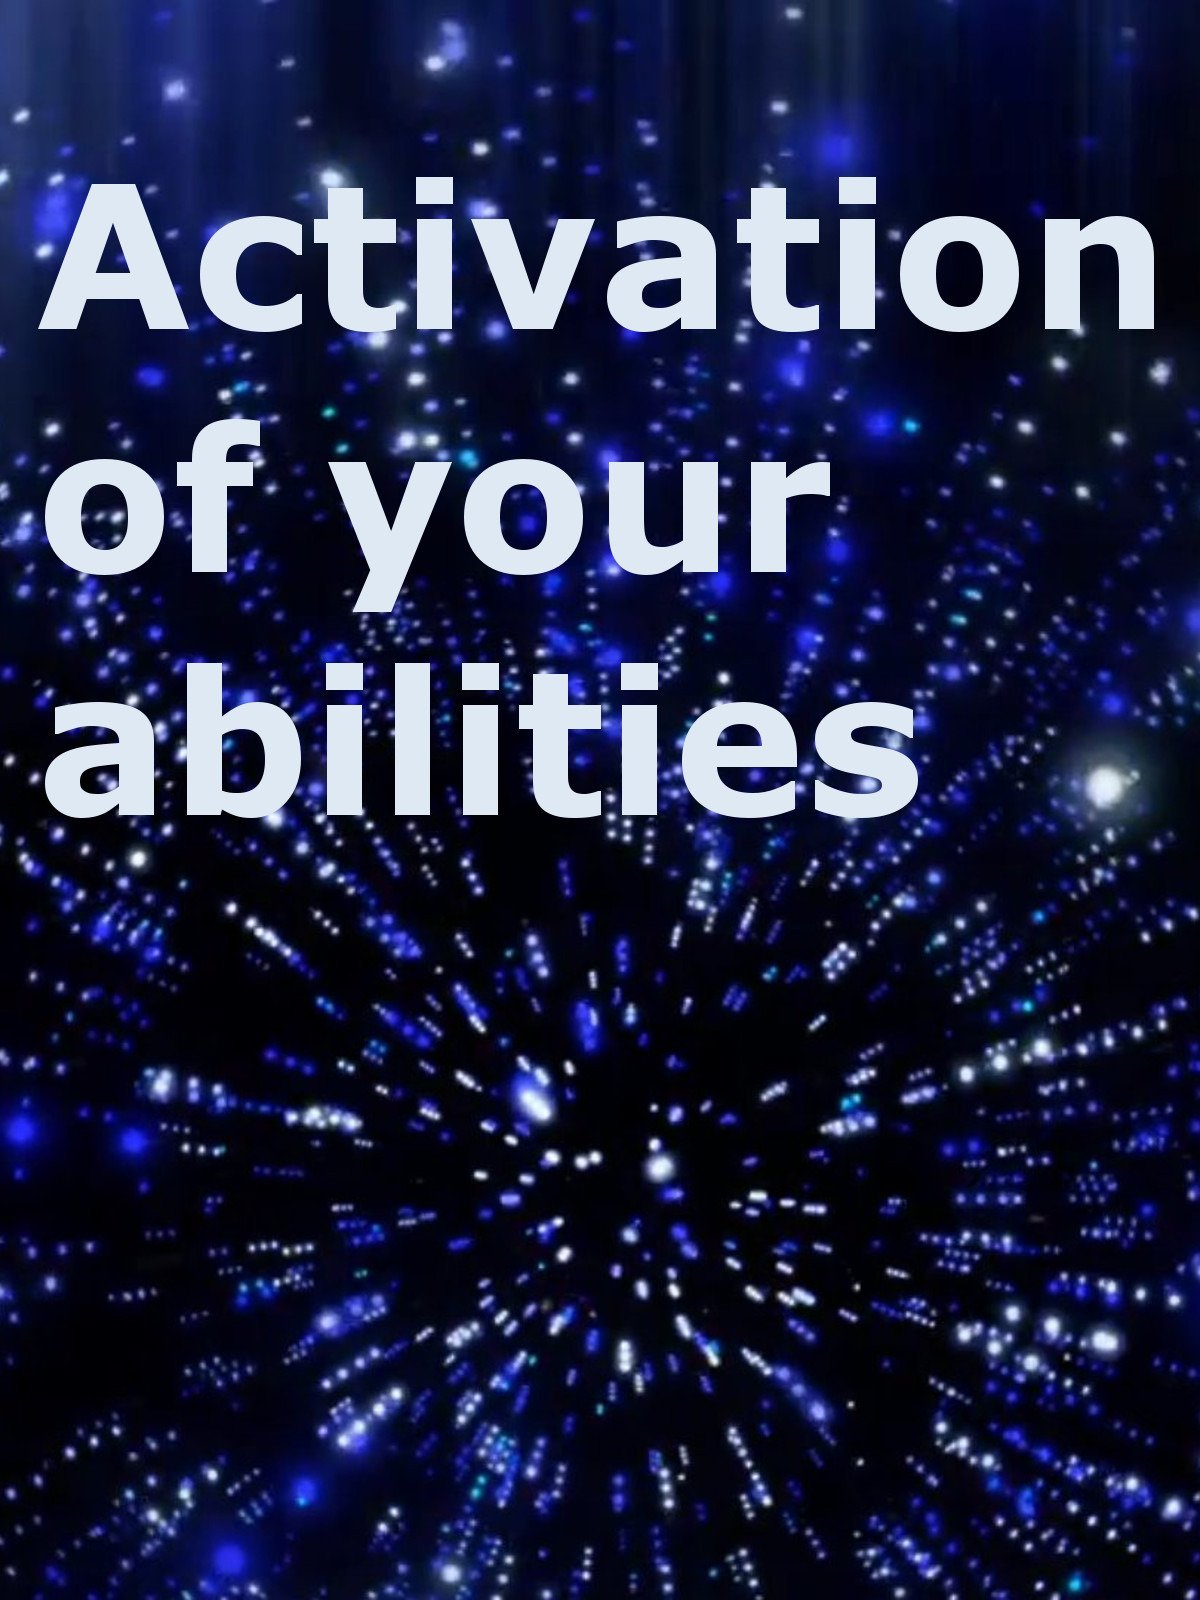 Activation of your abilities